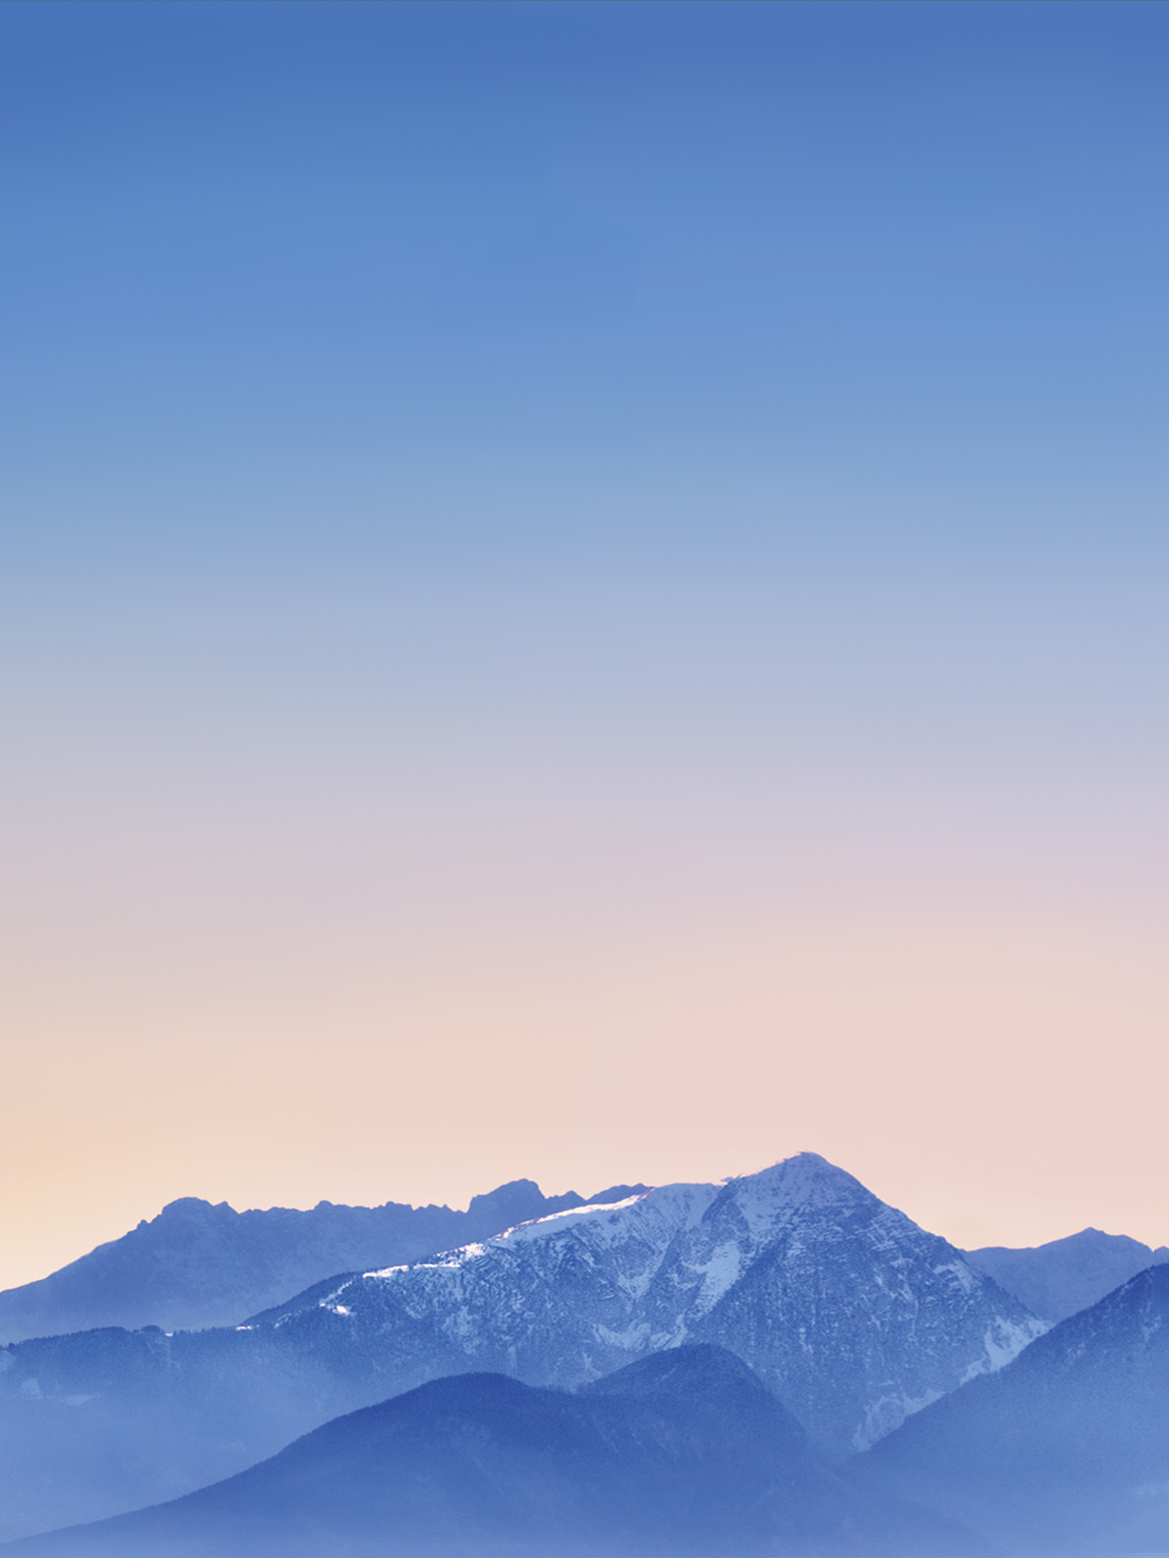 The Two Enigmatically Missing Ipad Air 2 Mountain Wallpapers Osxdaily